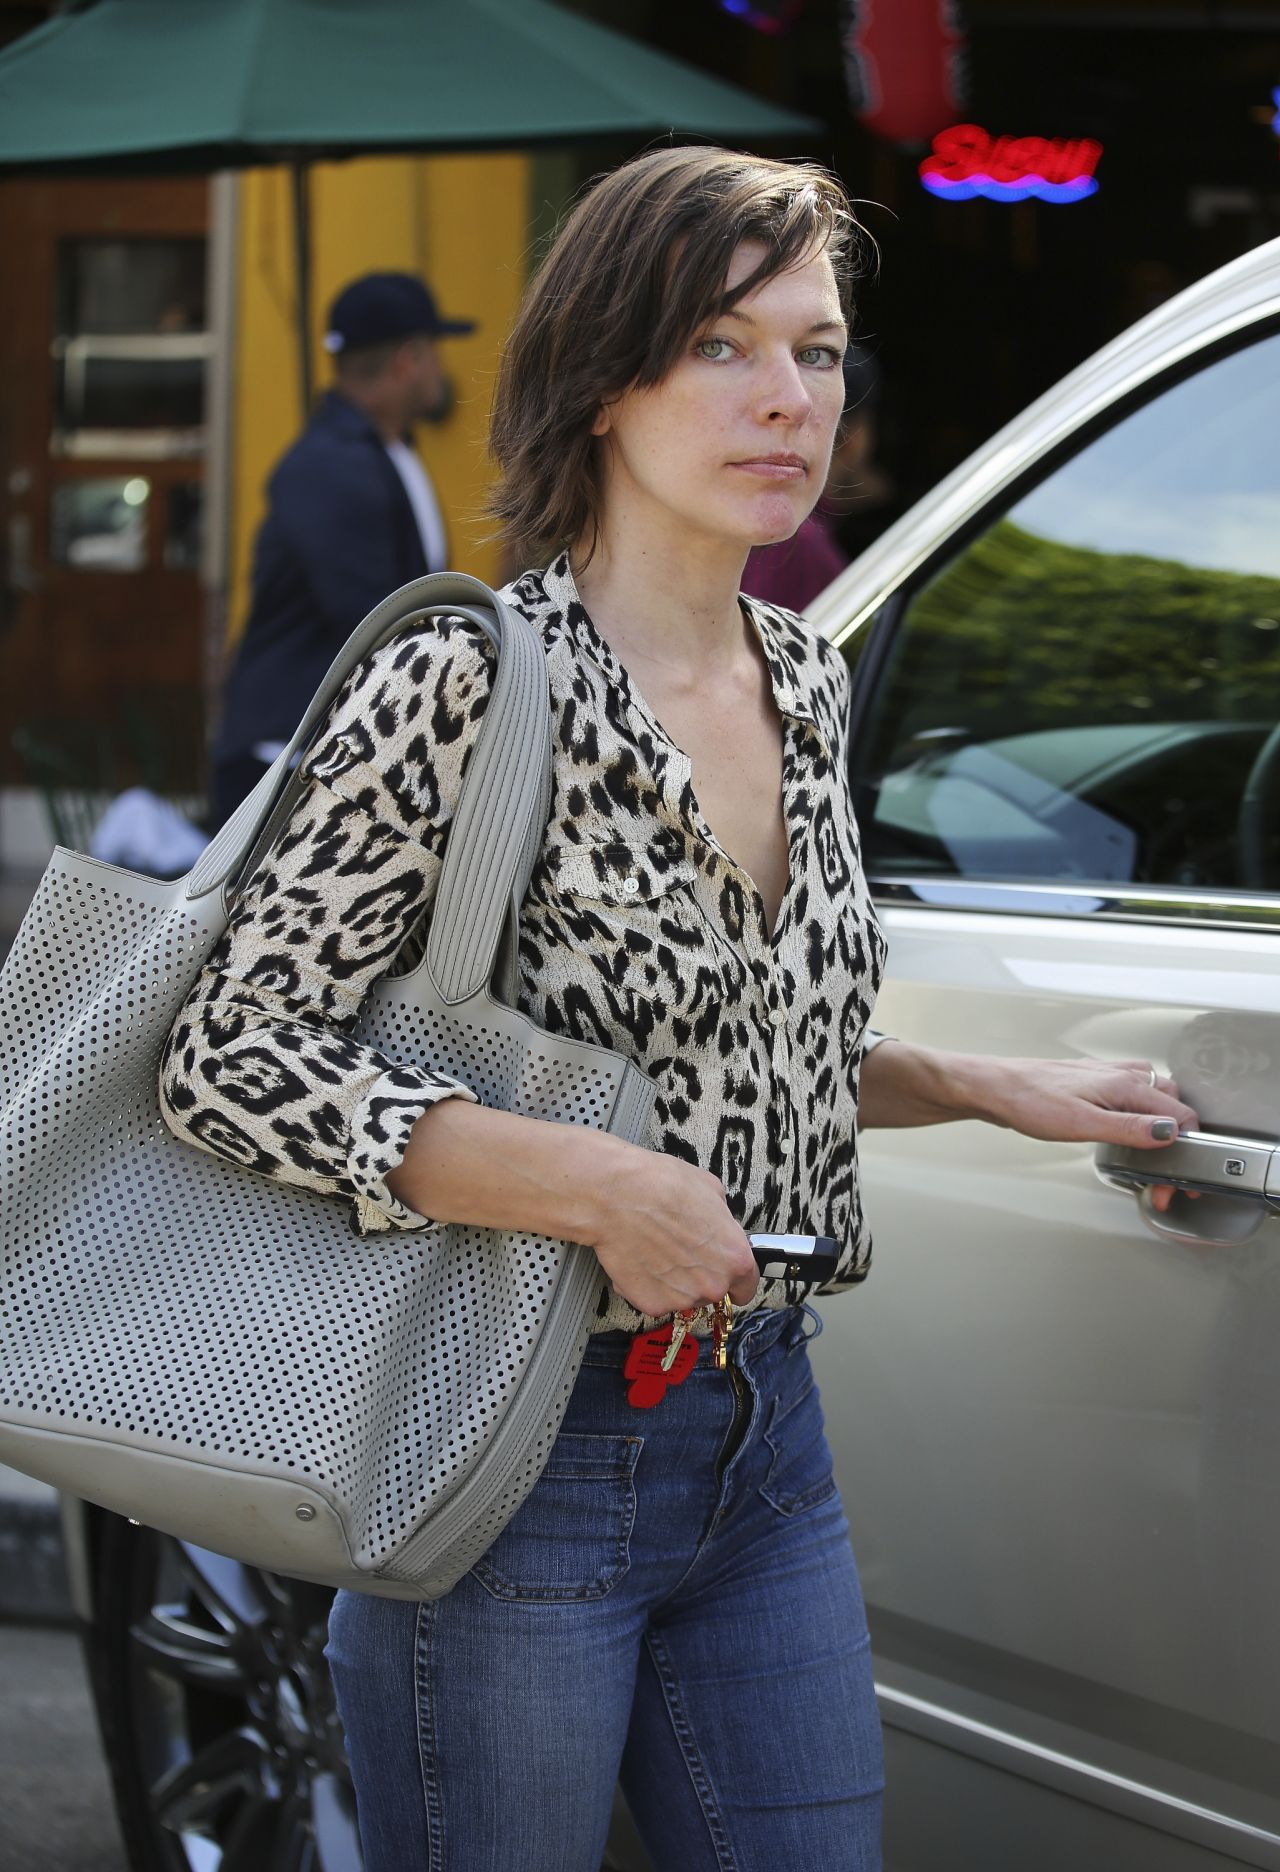 Milla Jovovich Urban Outfit - Strolling Out in Los Angeles ... Milla Jovovich